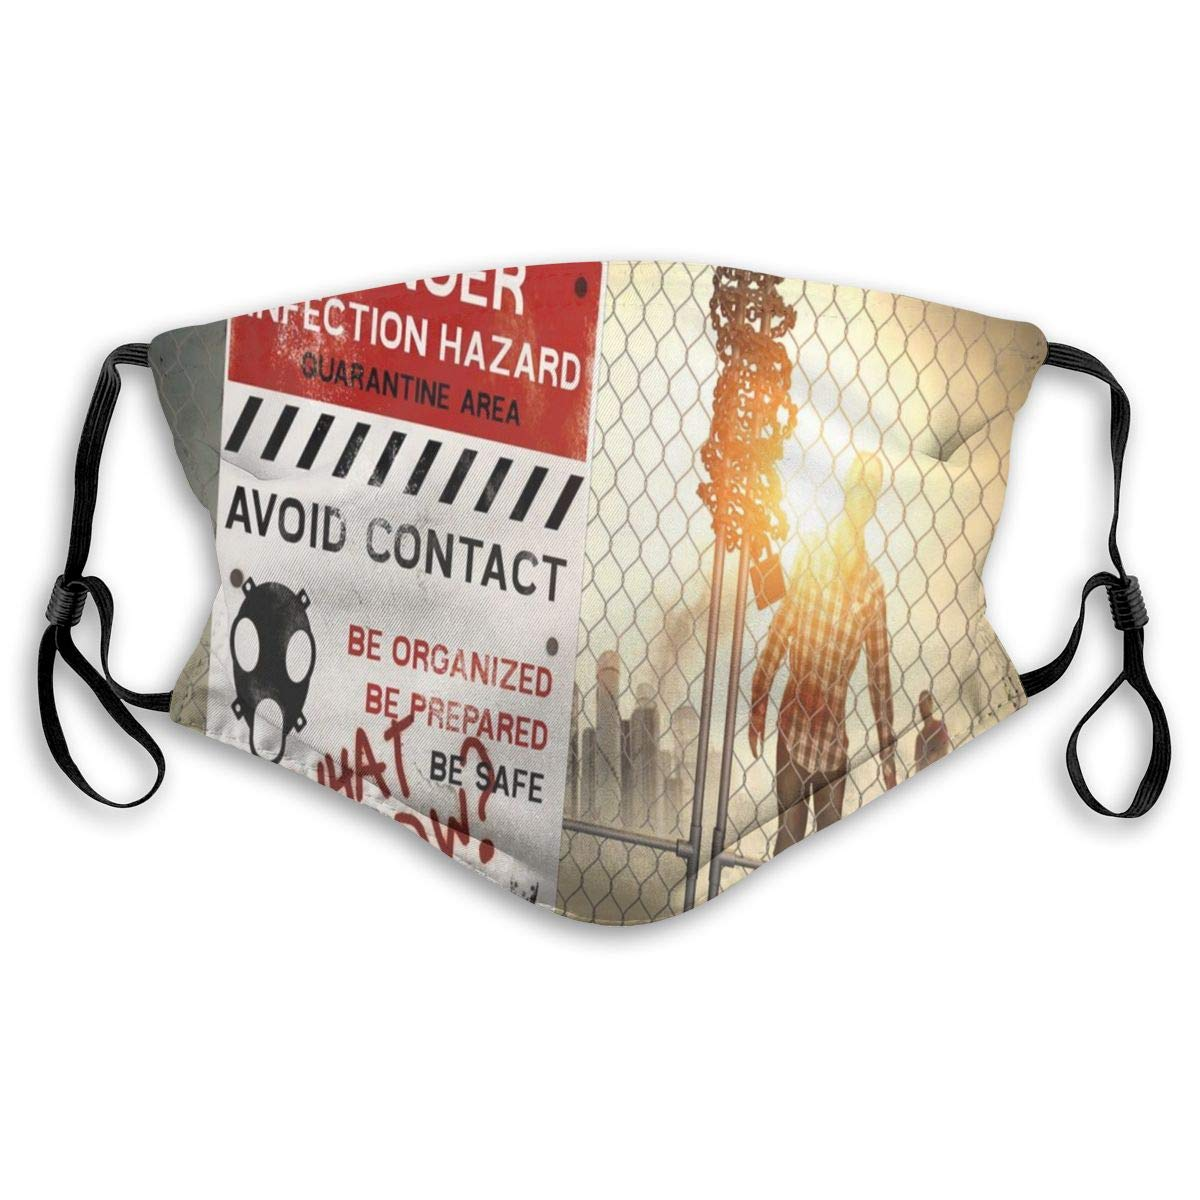 Mouth Mask,Sanitary Mask,Protection From Dust, Ash,Pollen Face Masks Dead Man Walking In Dark Danger Scary Scene Fiction